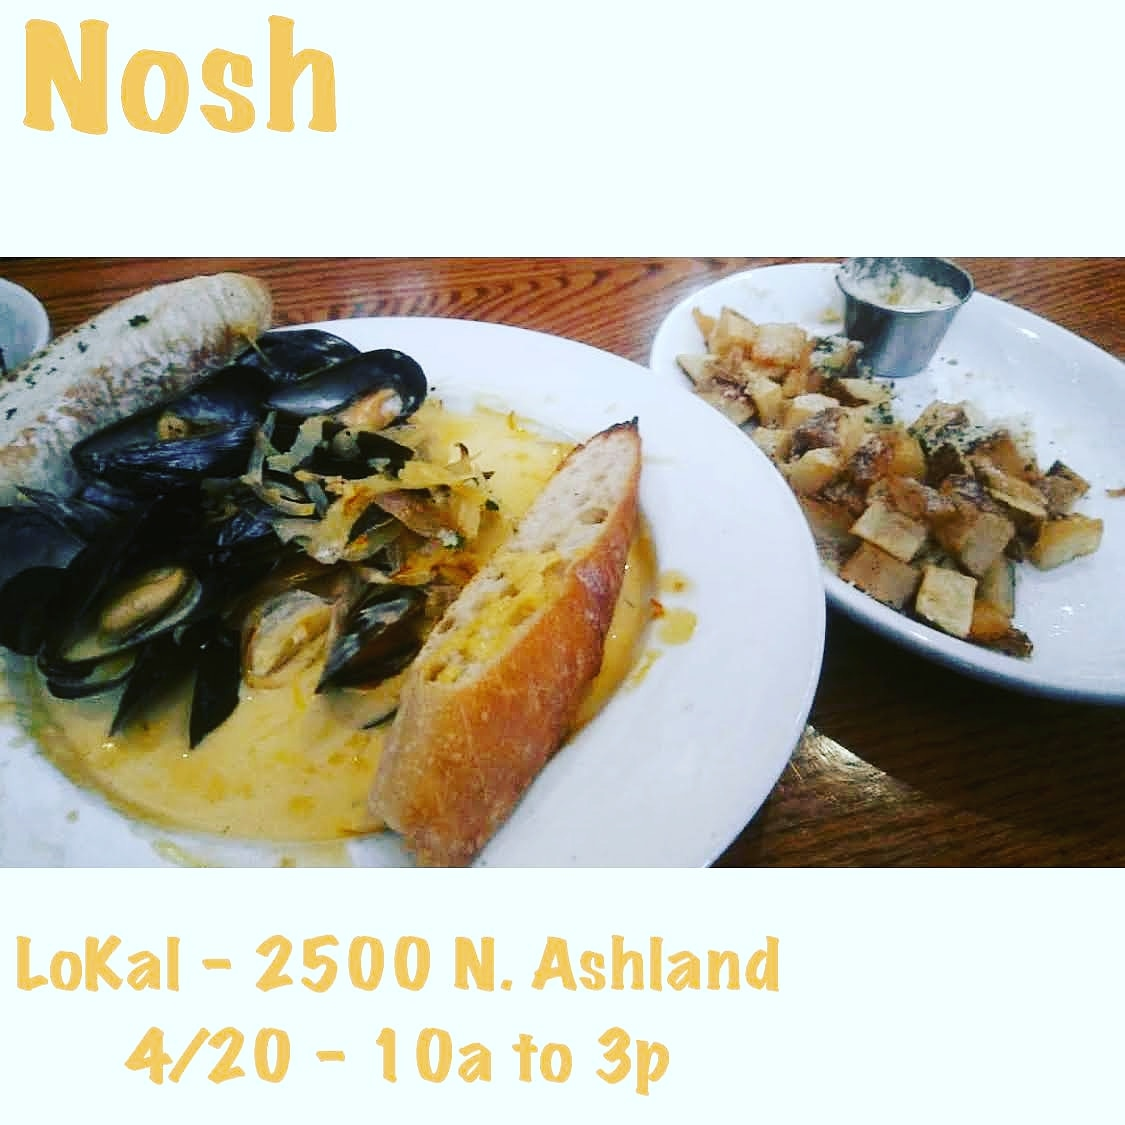 Saturday Day 4/20: Nosh @ Lokal